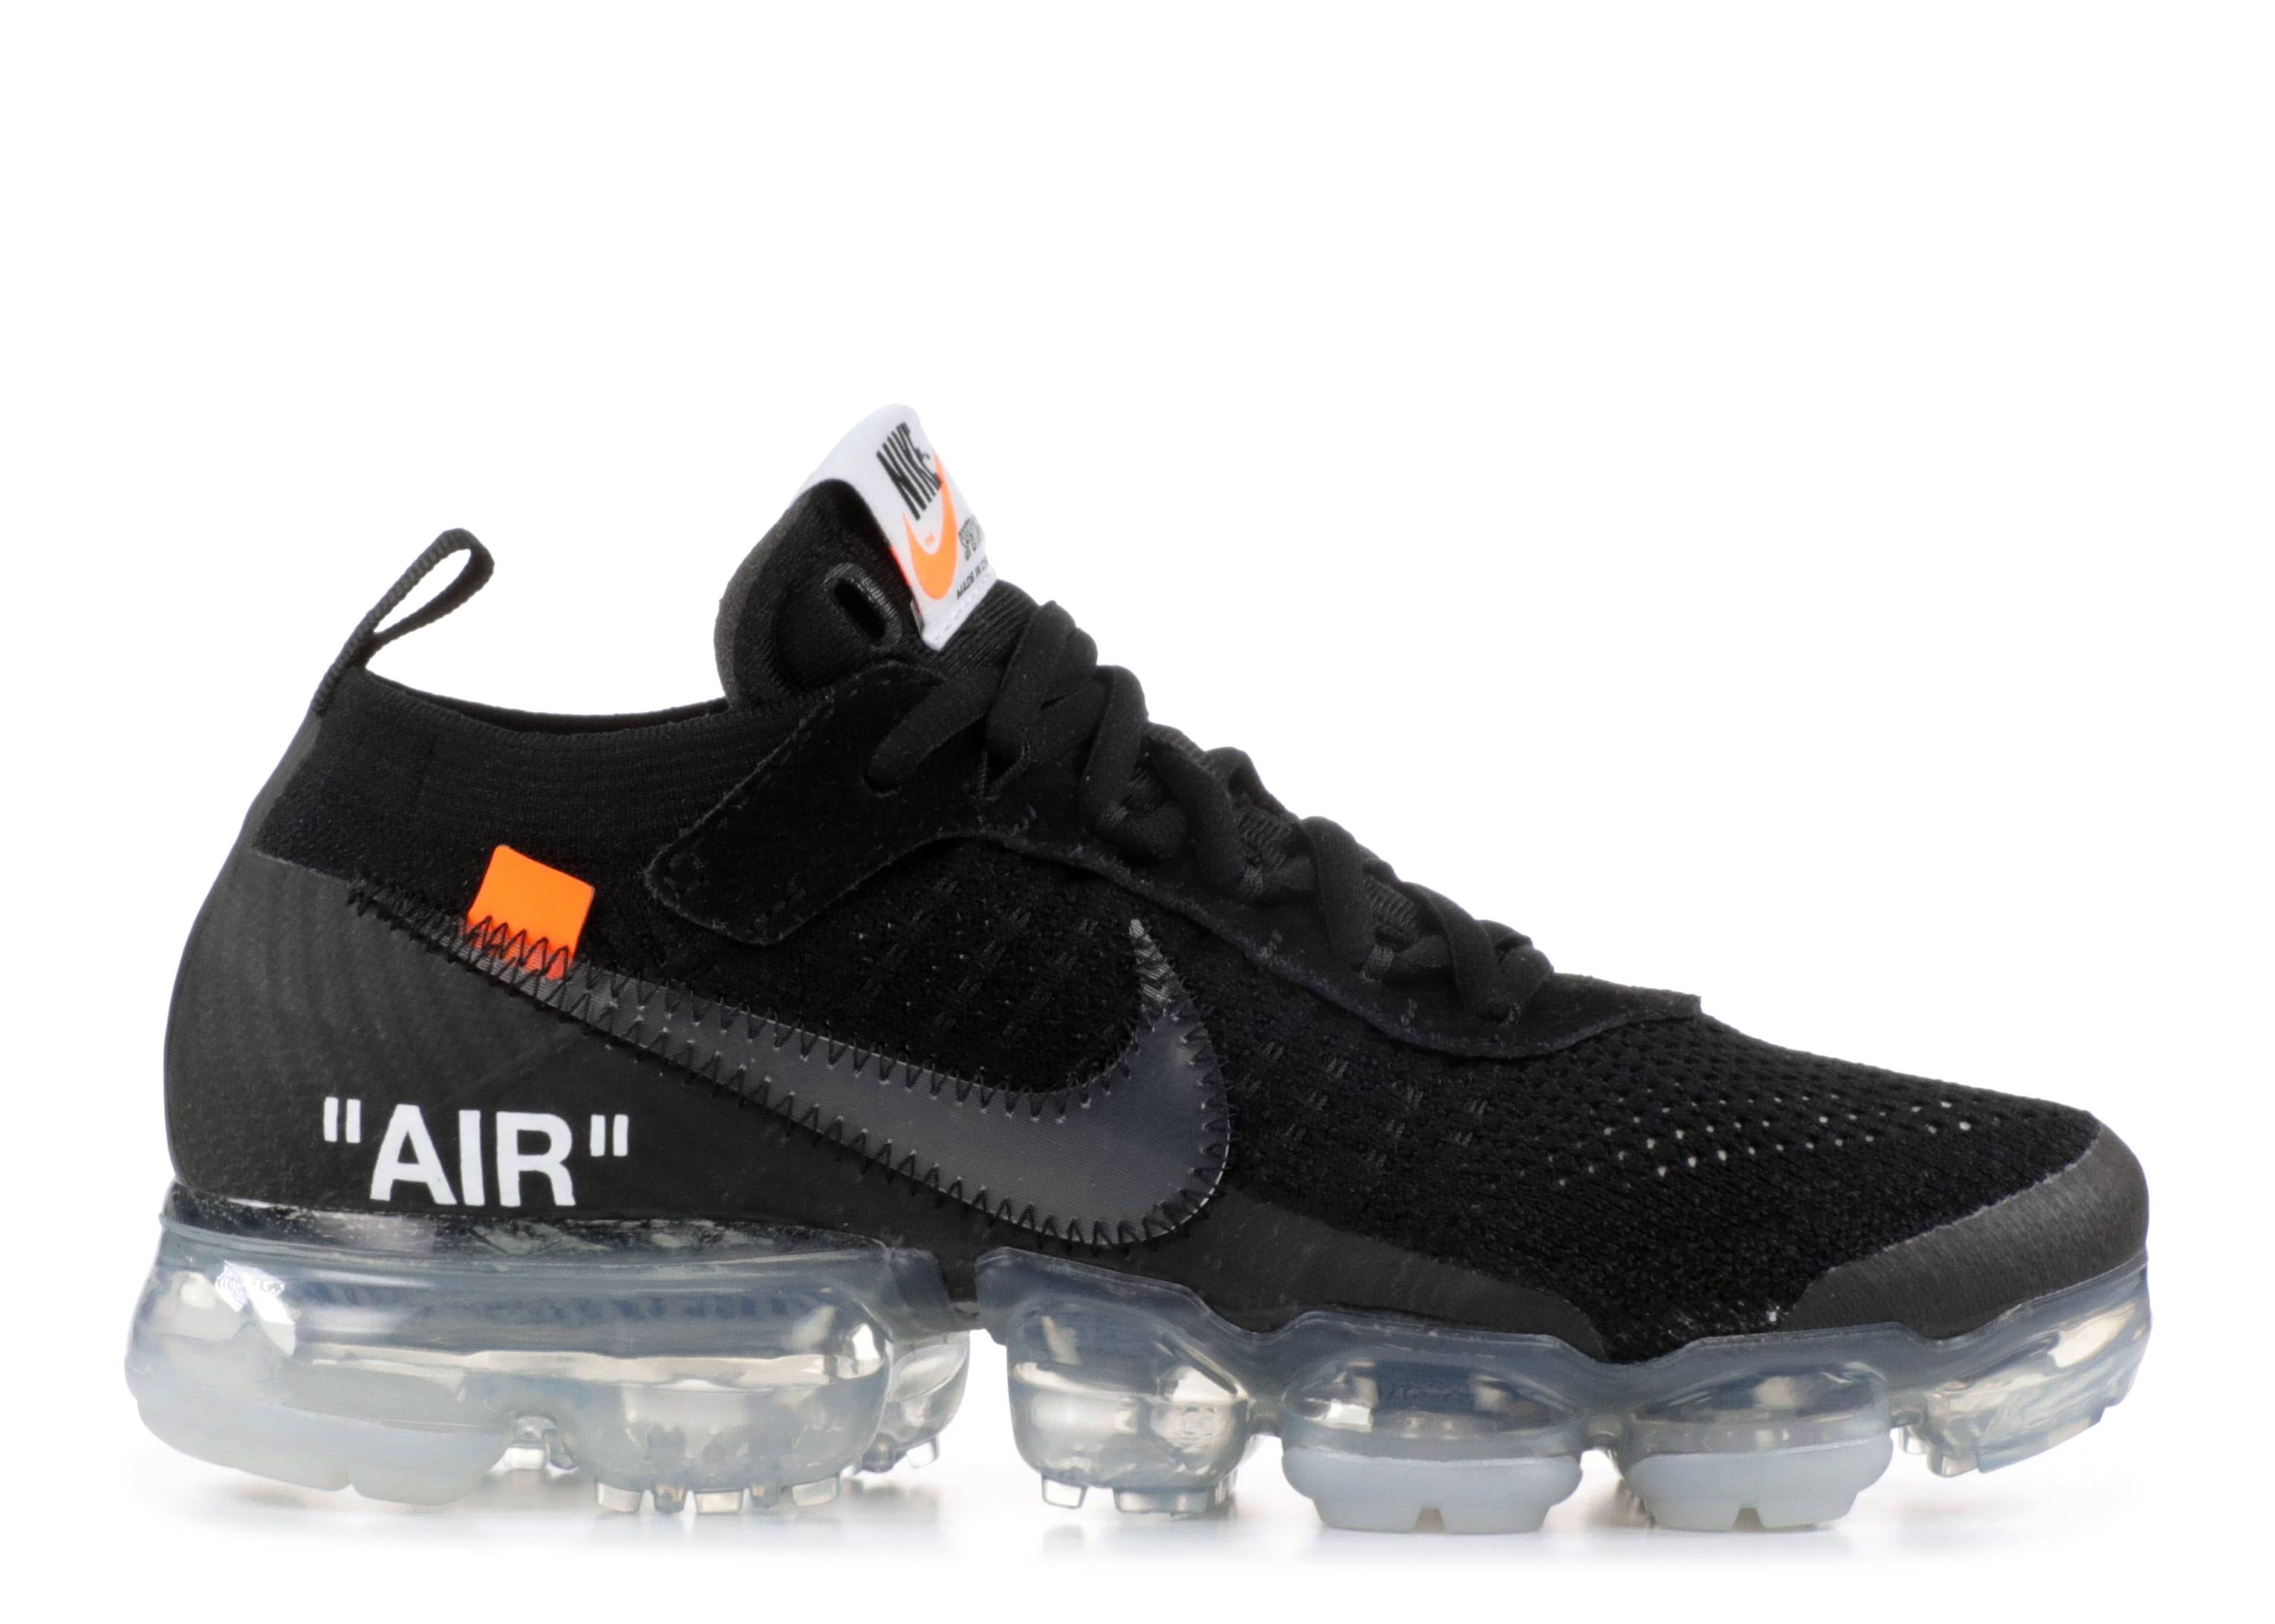 the 10 : nike air vapormax fk